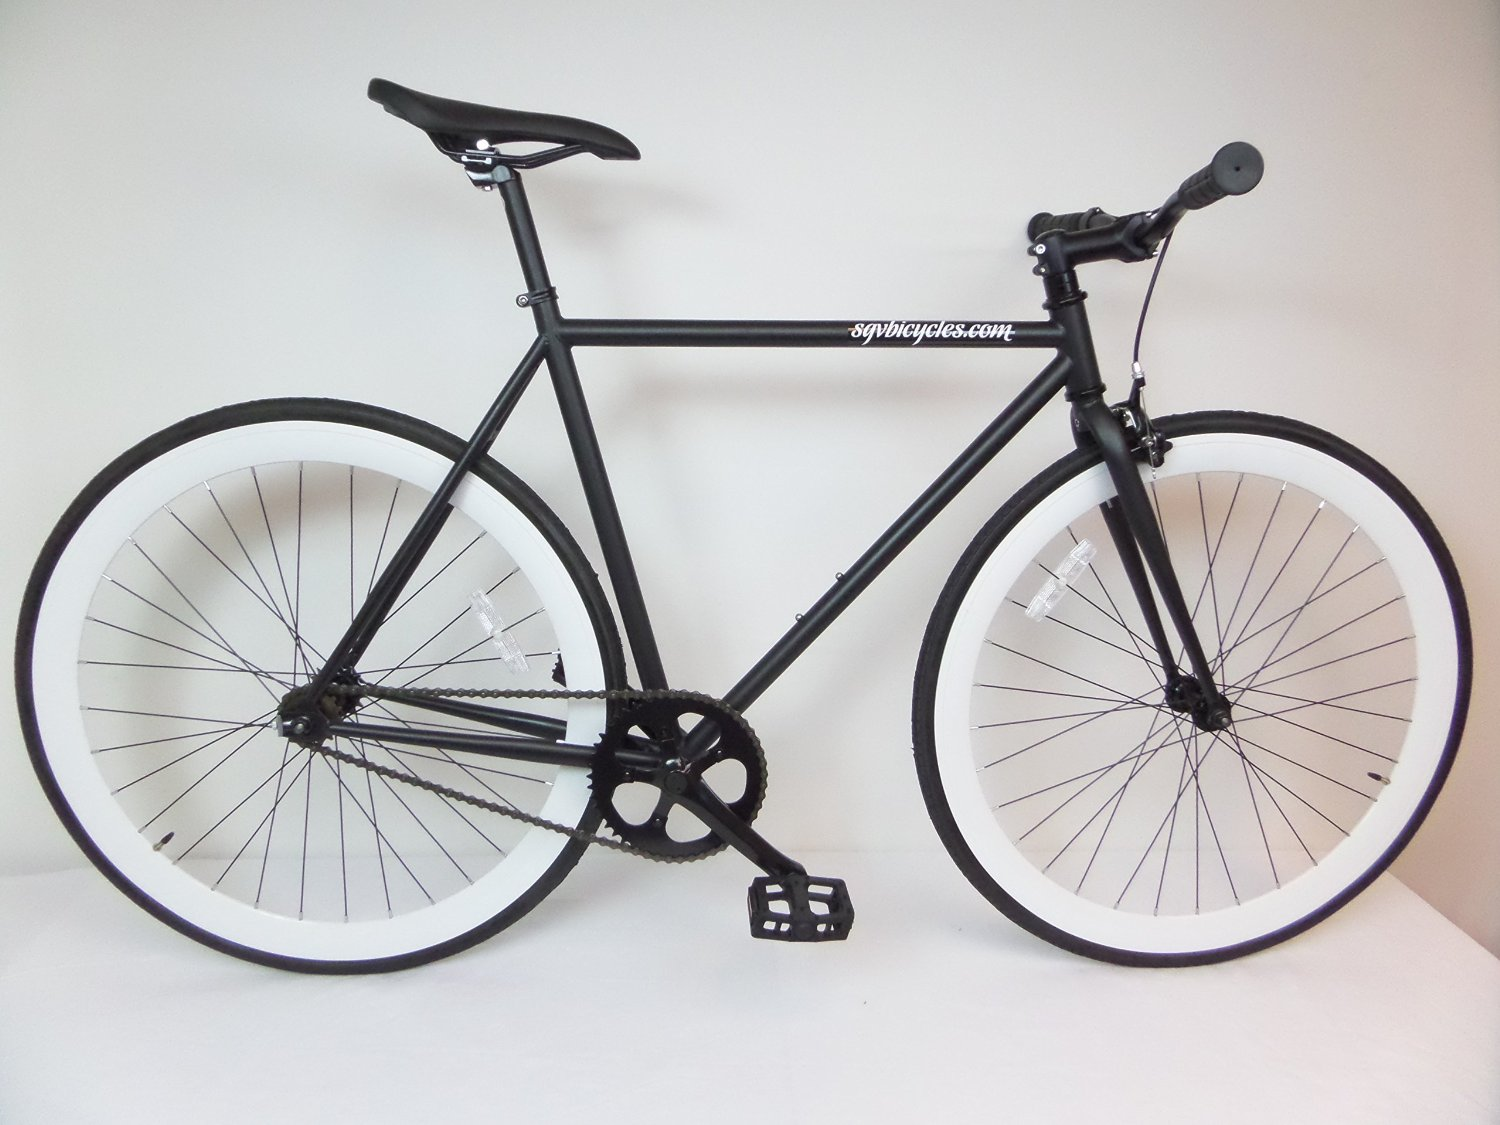 6d22ae92947 Get Quotations · Matte Black and White Fixie Single Speed Fixie Bike with  Flip Flop Hub By Sgvbicycles Fixies